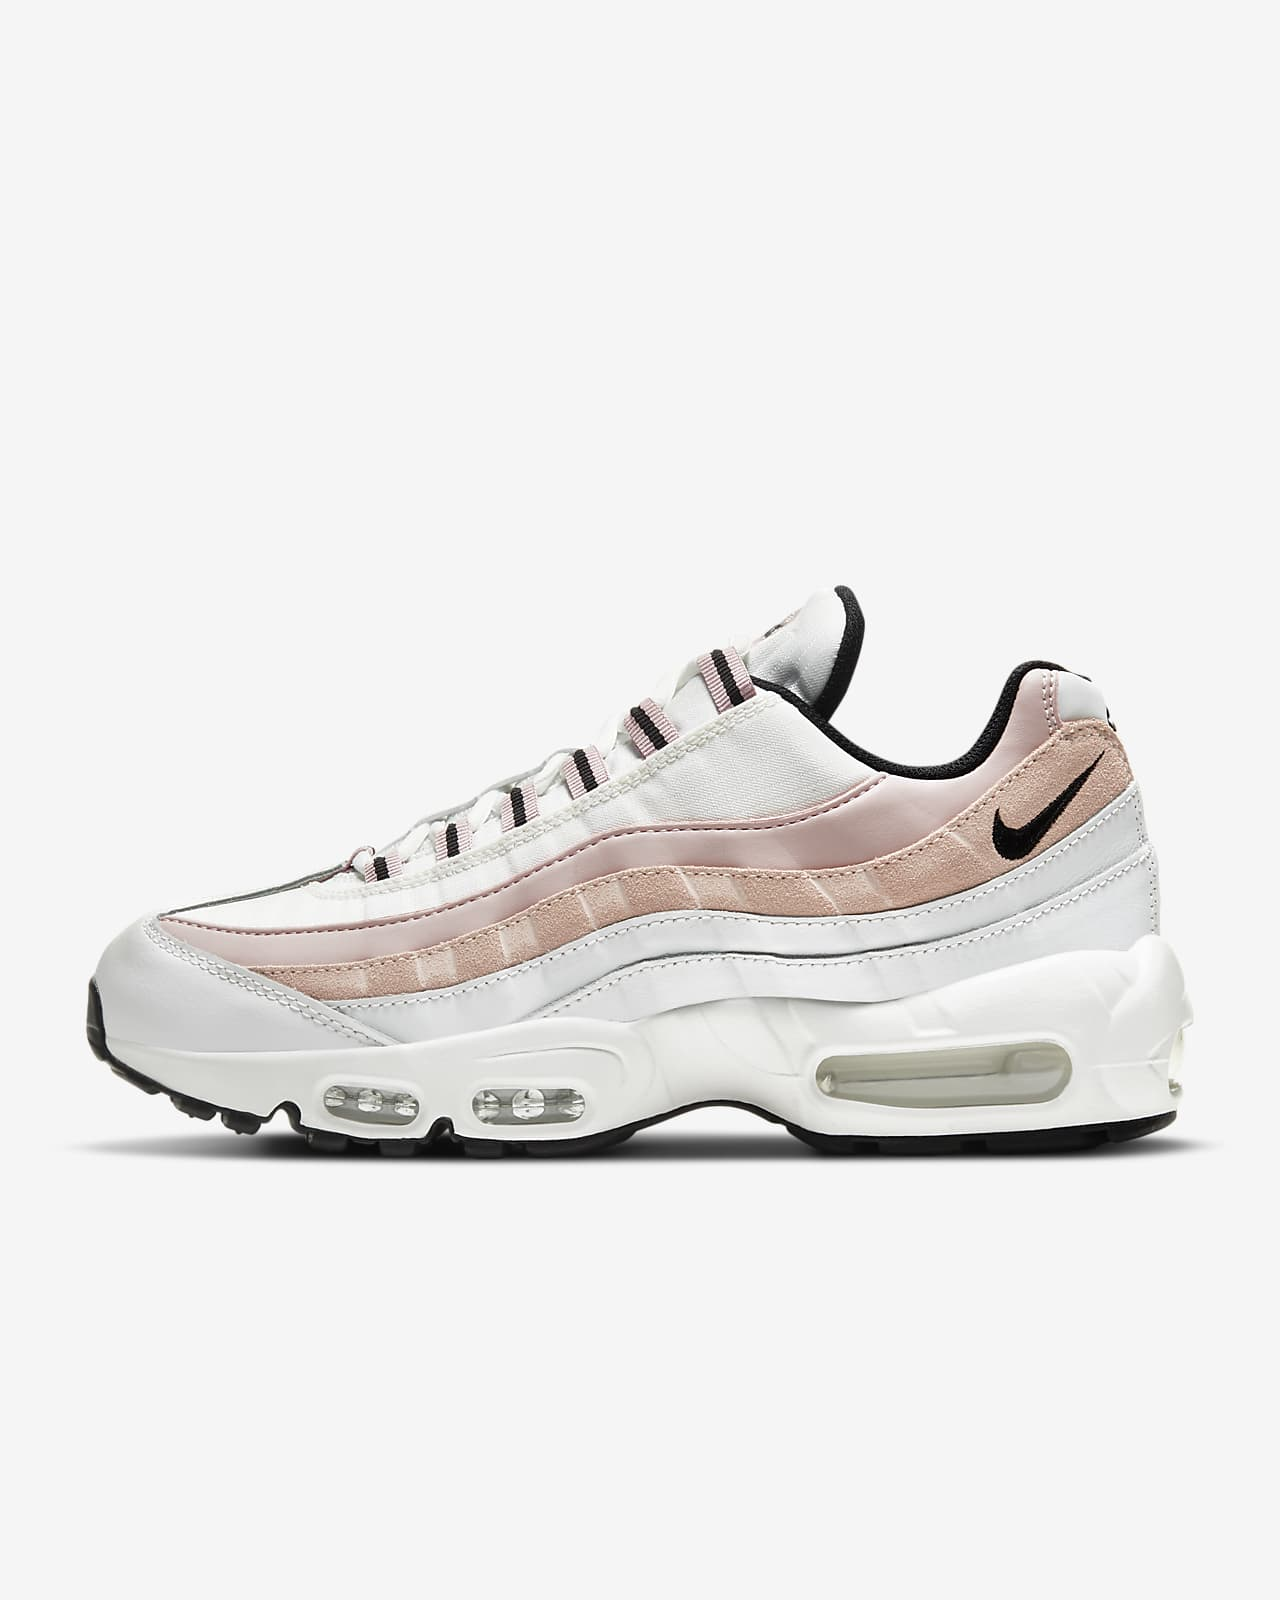 Nike Air Max 95 damesko